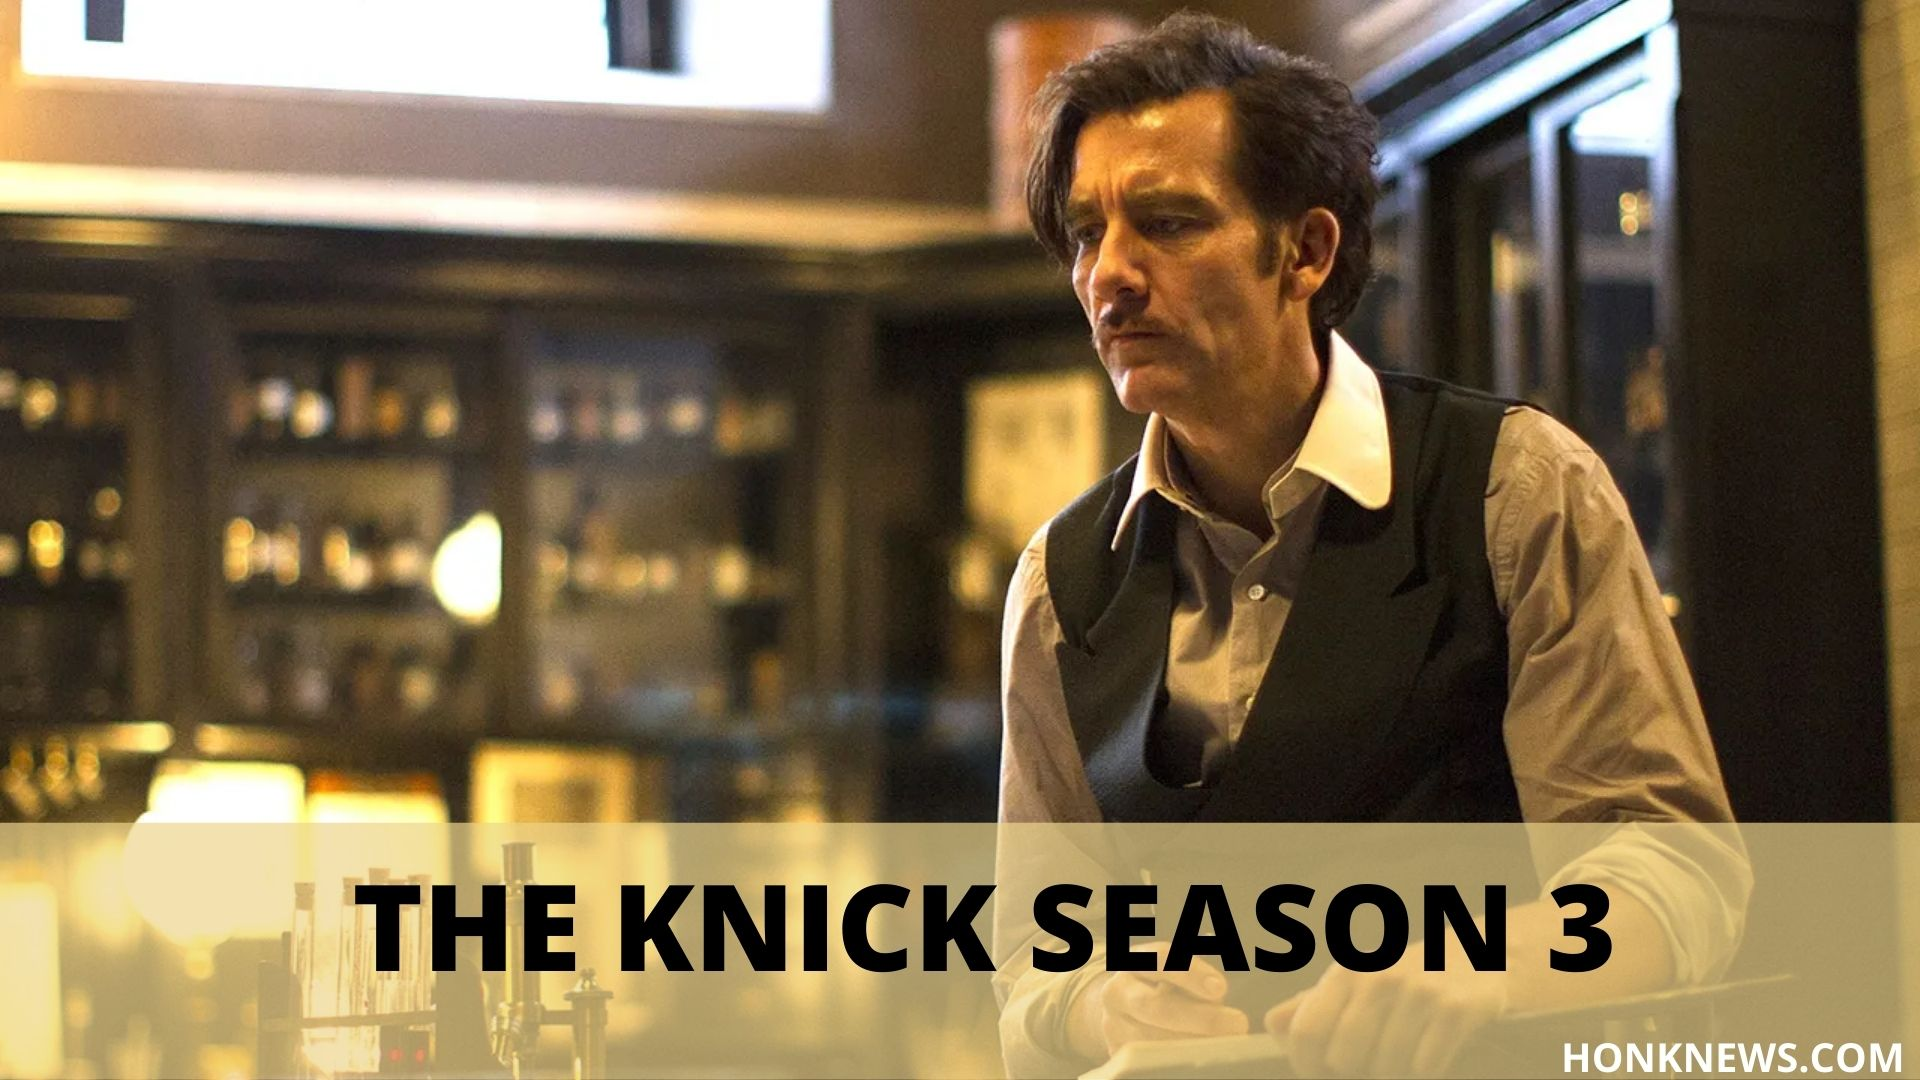 Everything You Need To Know About The Knick Season 3